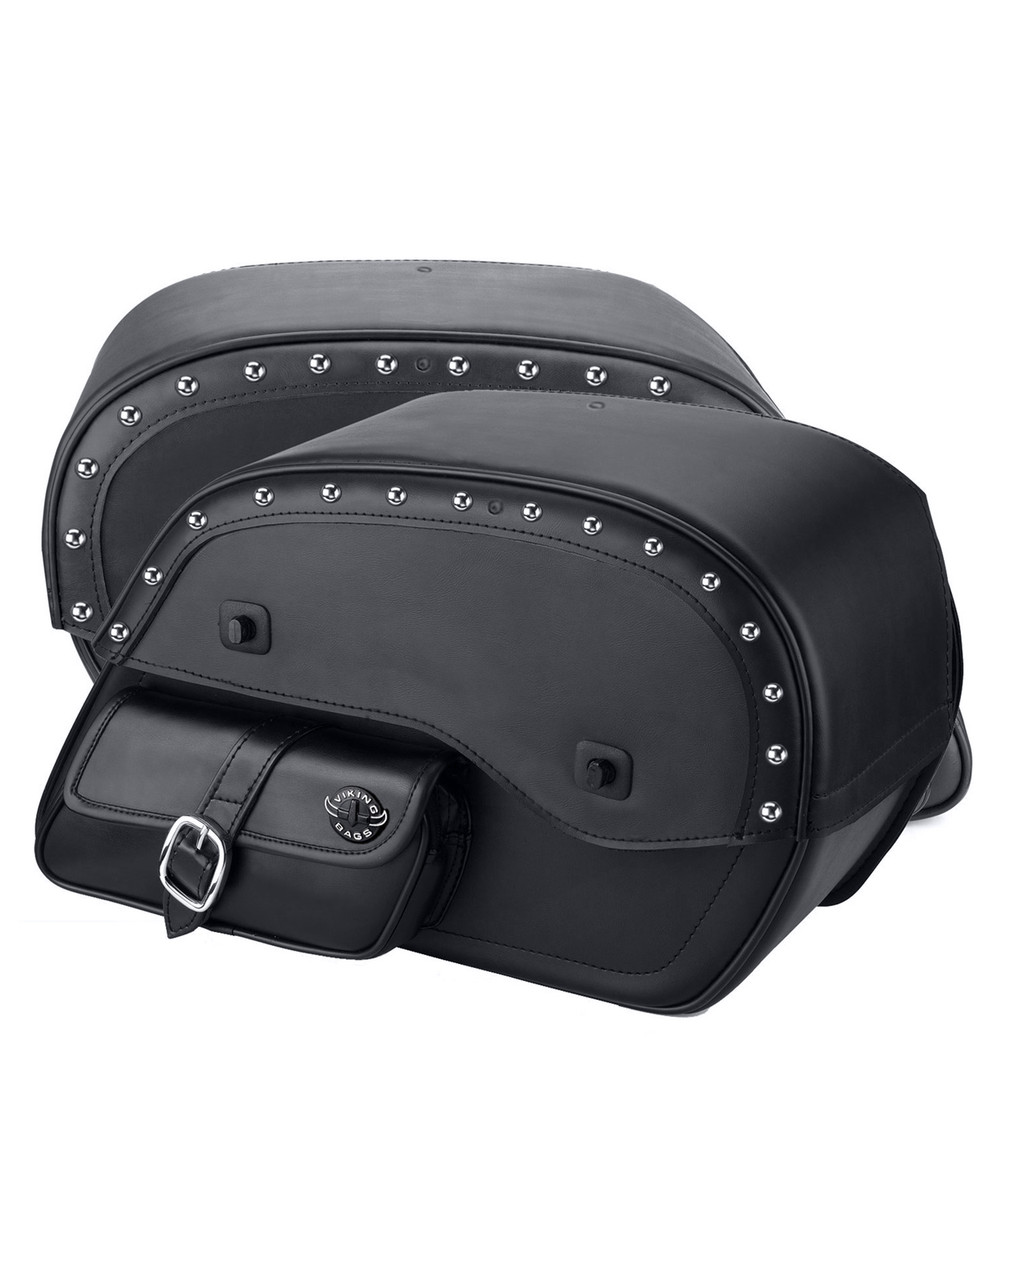 Honda 1500 Valkyrie Interstate SS Side Pocket Studded Motorcycle Saddlebags Both Bags View